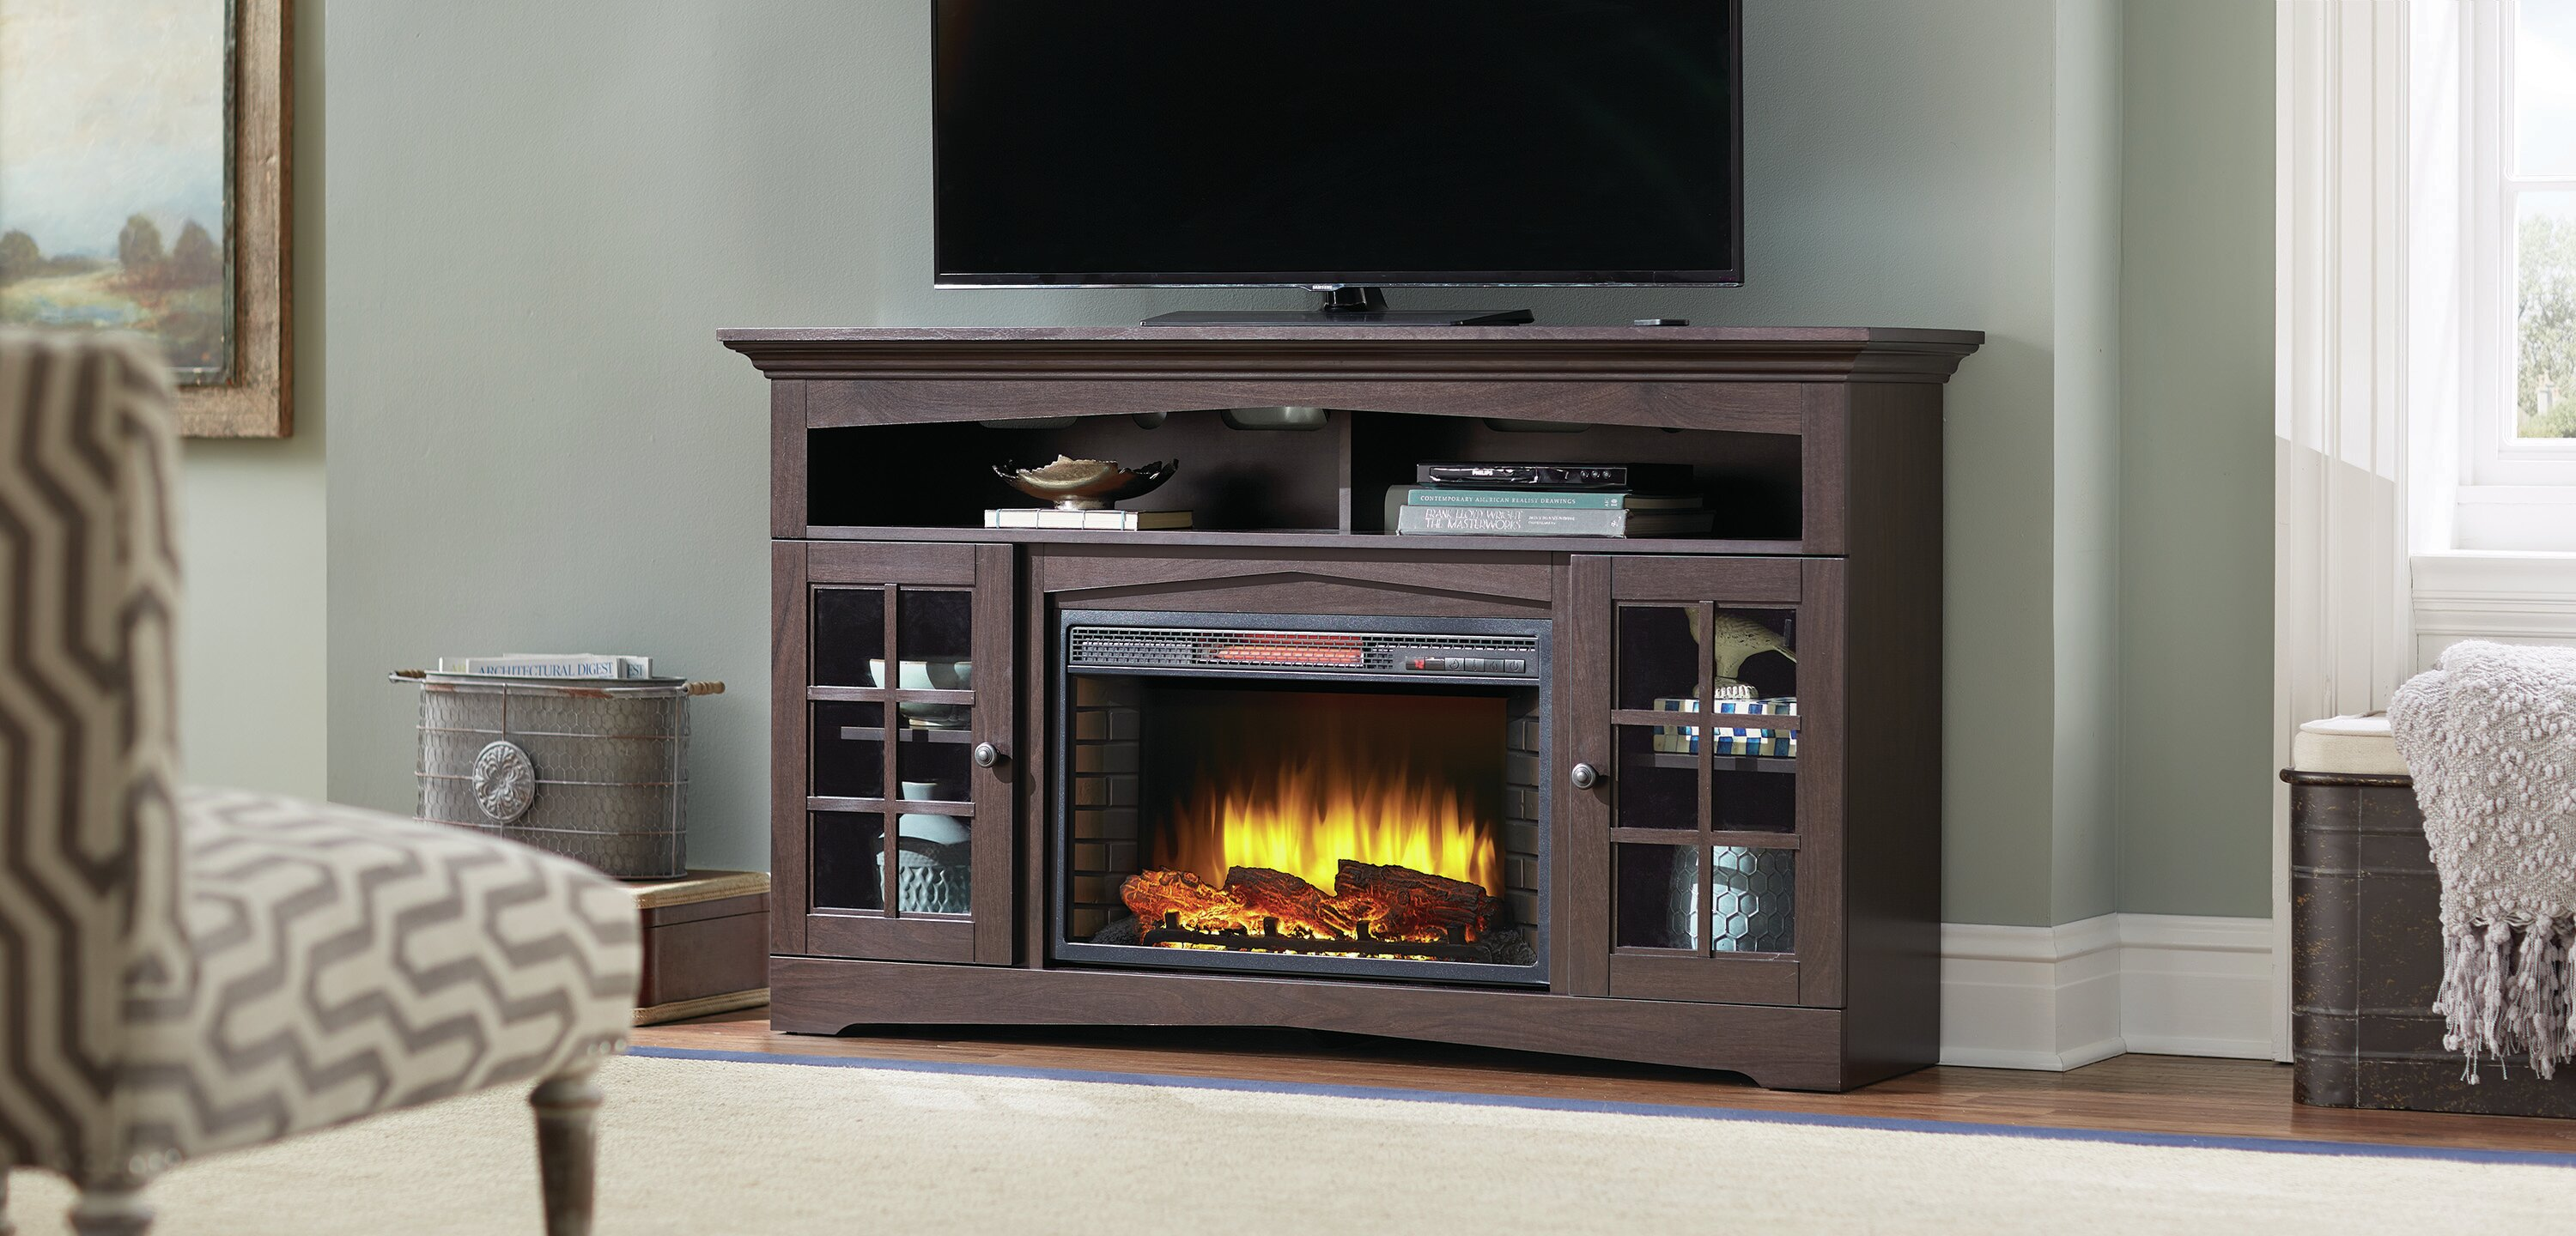 in layout ideas living rectangular image with how arranging furniture for to new room of design a fireplace